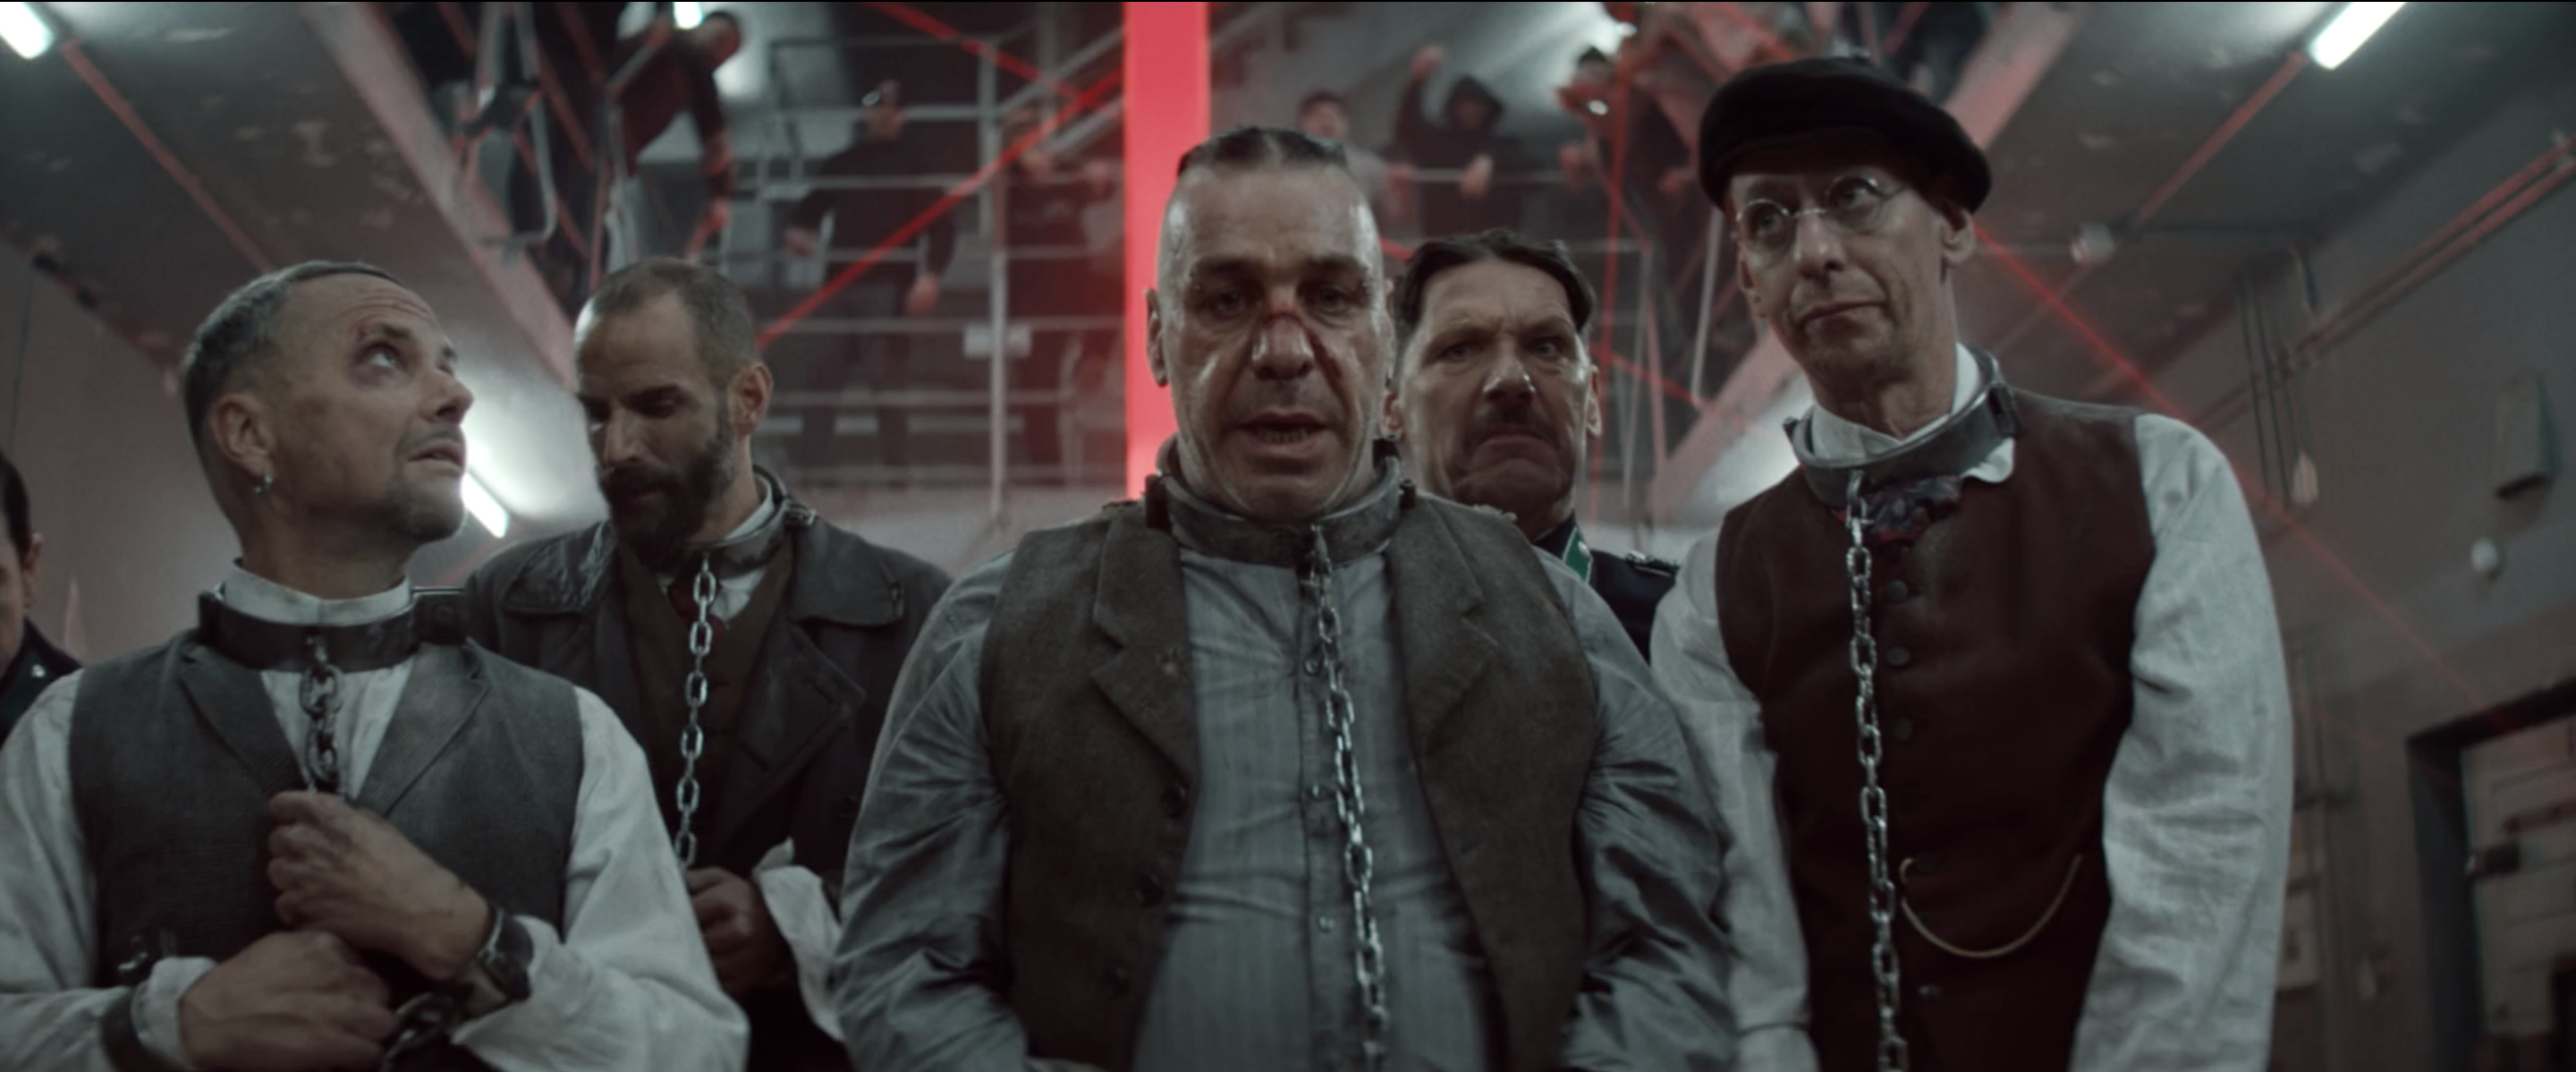 An Insight Into the Dark History Behind Rammstein's ...